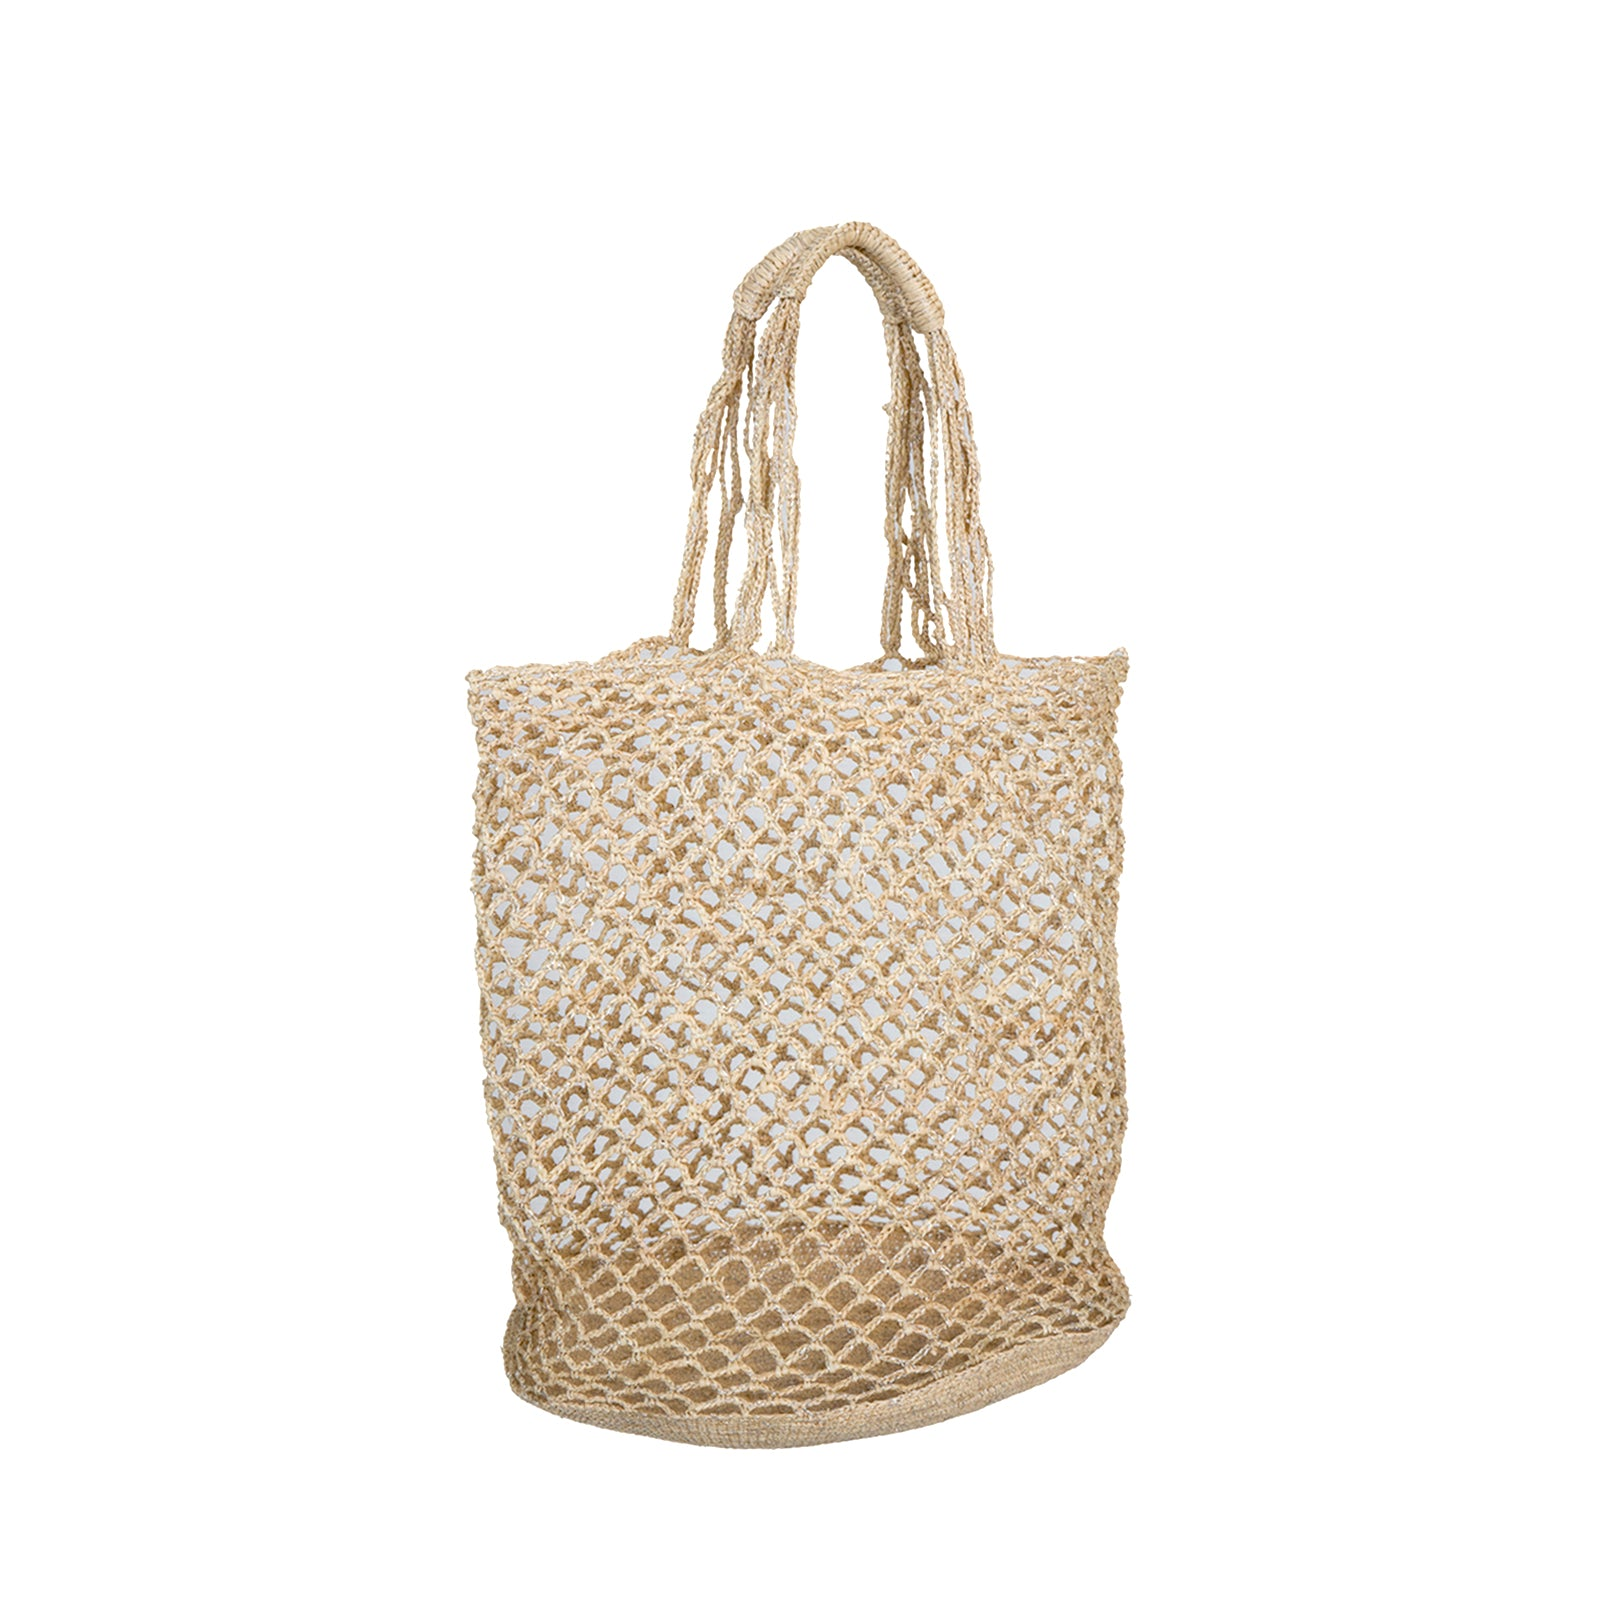 Holly Bag - Natural/silver